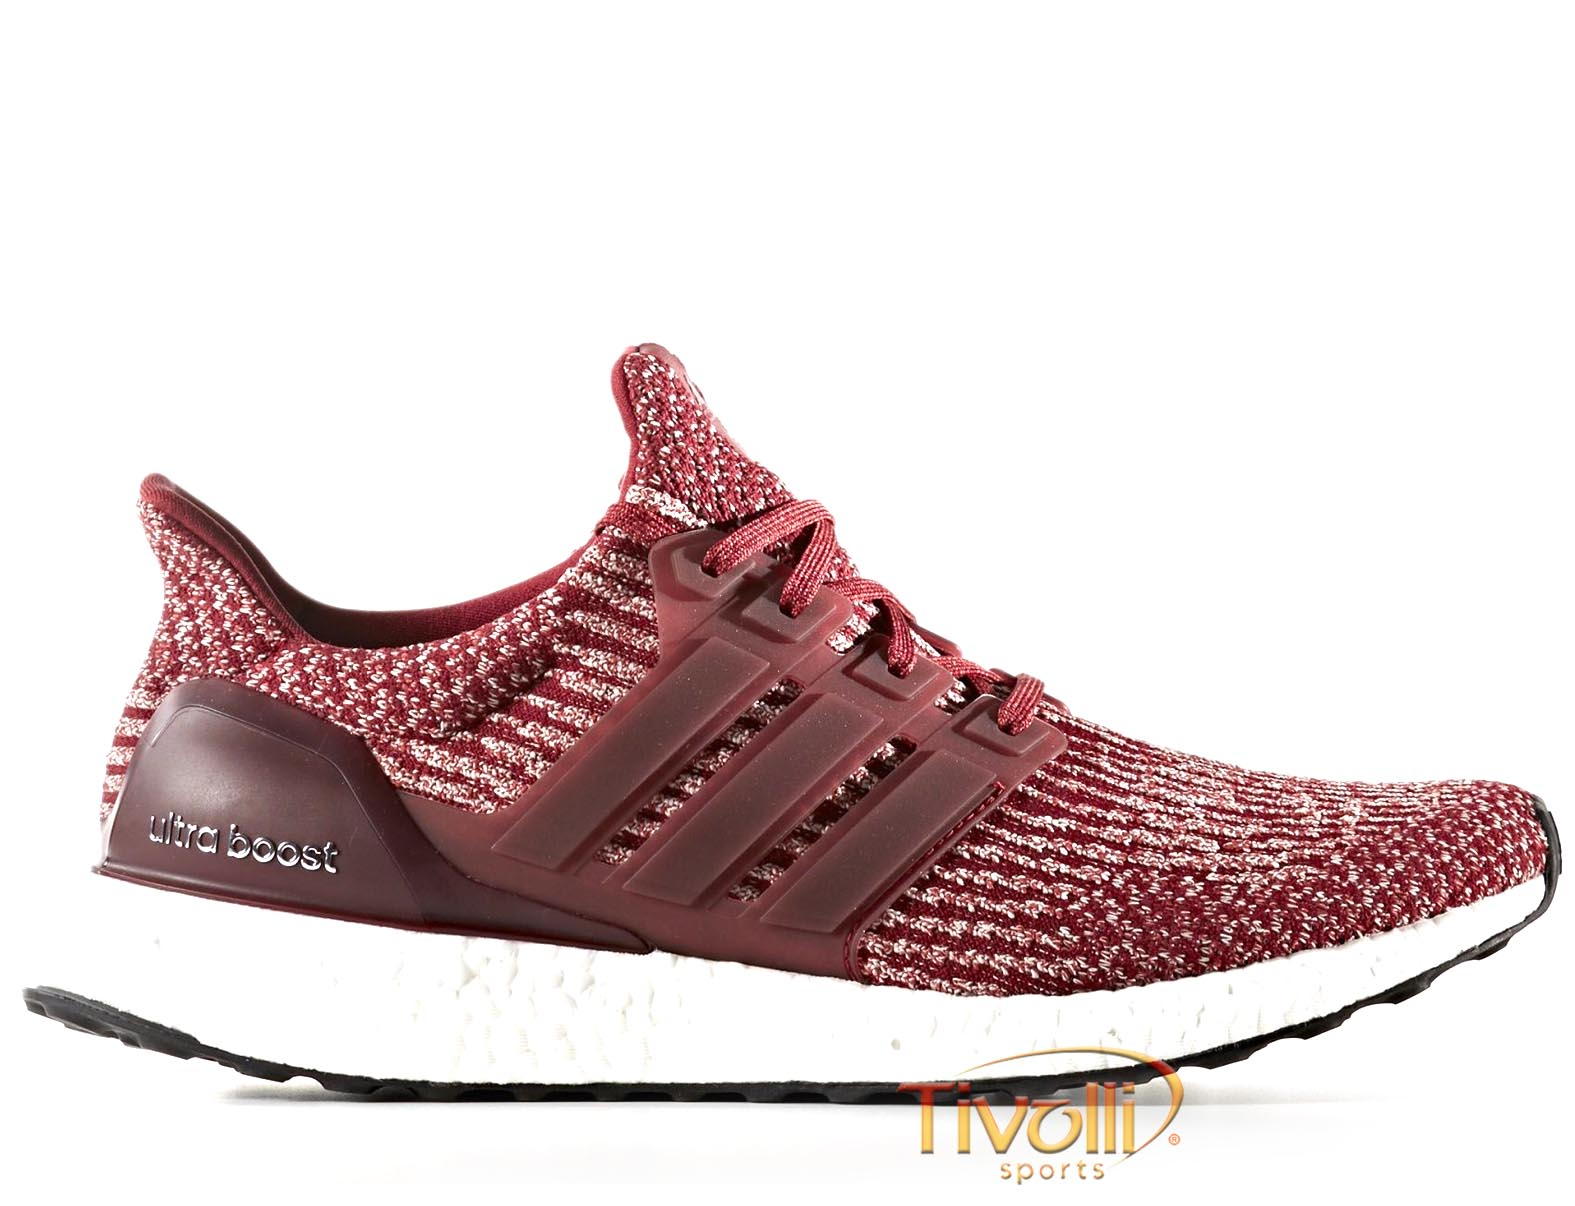 france adidas ultra boost feminino 41ecd d46c0 be0c715a23ebd